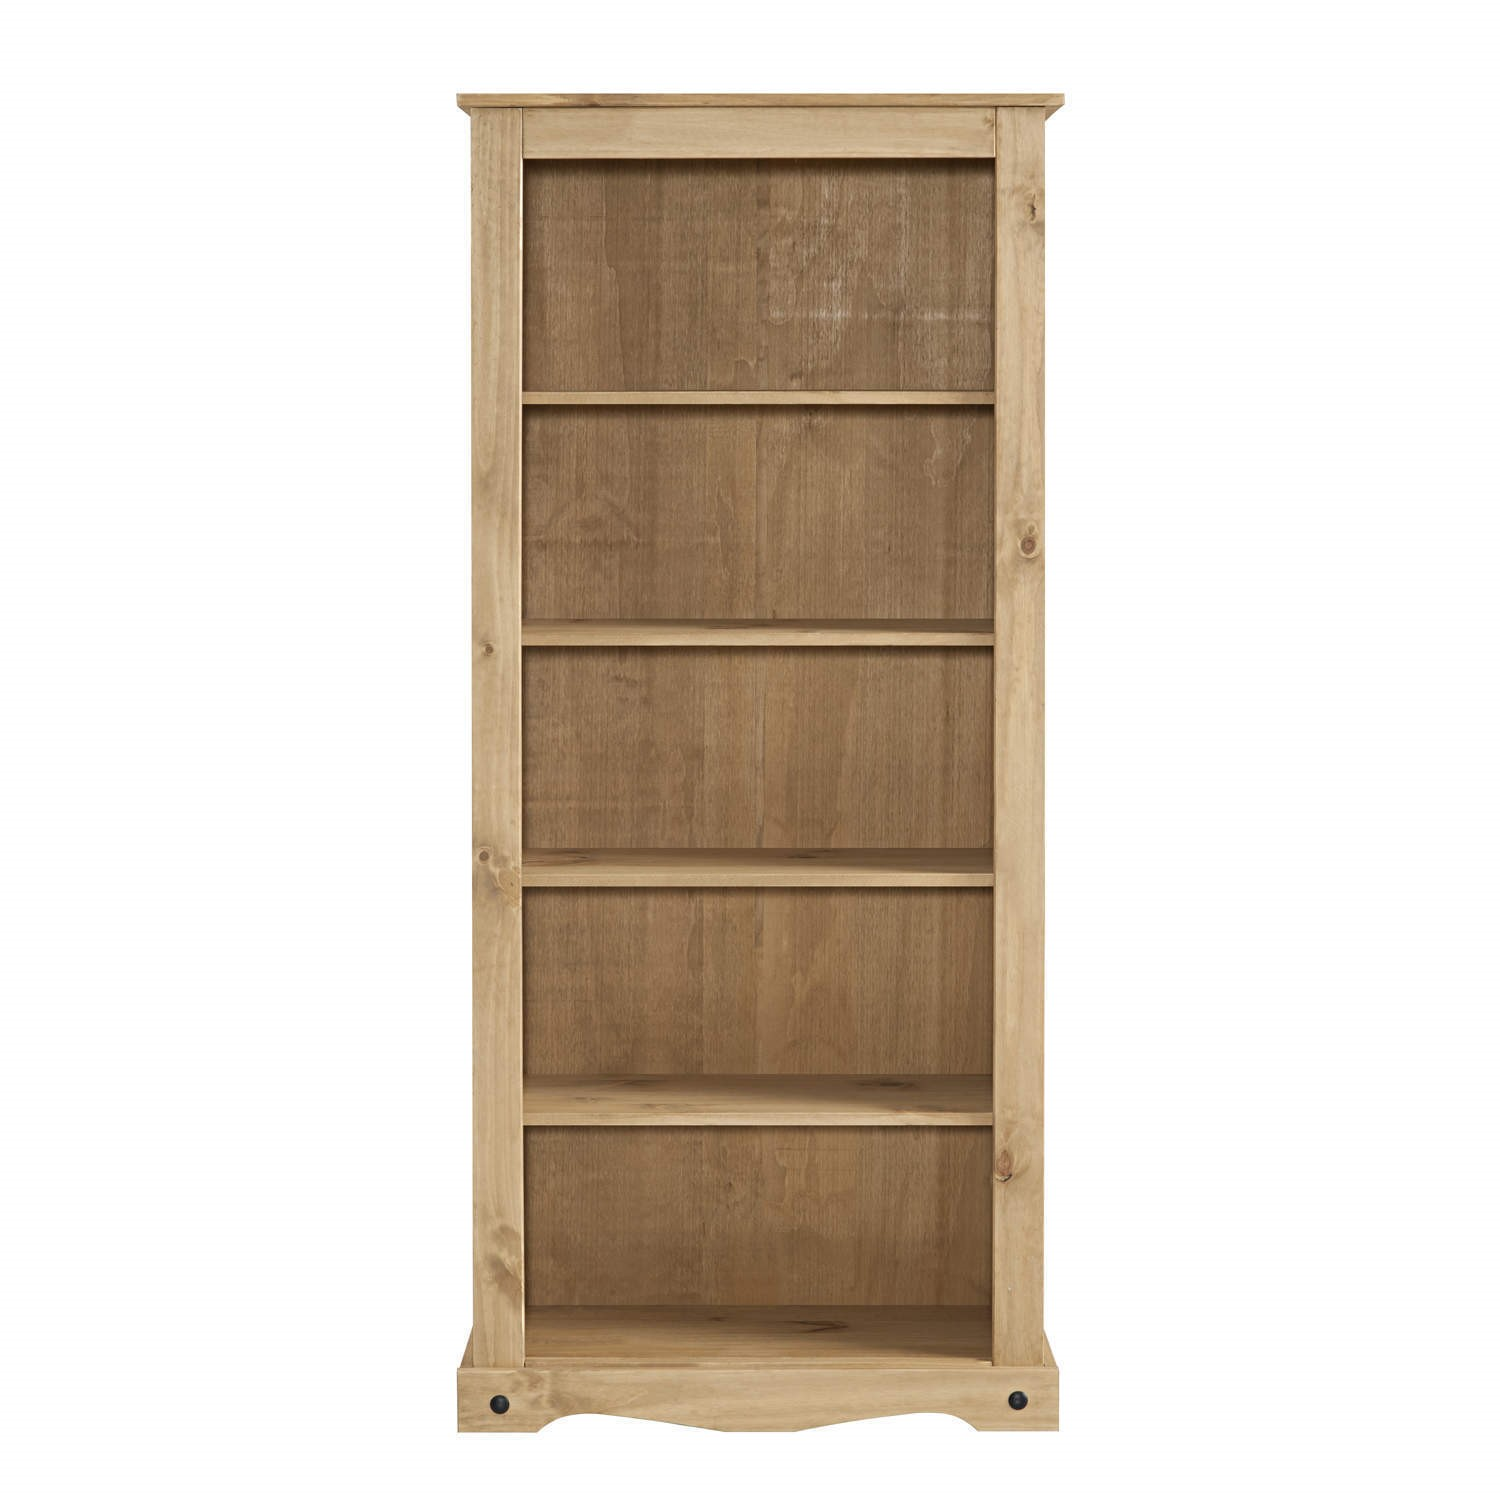 Corona Solid Pine Bookcase 6ft Tall Bookshelf With 5 Shelves